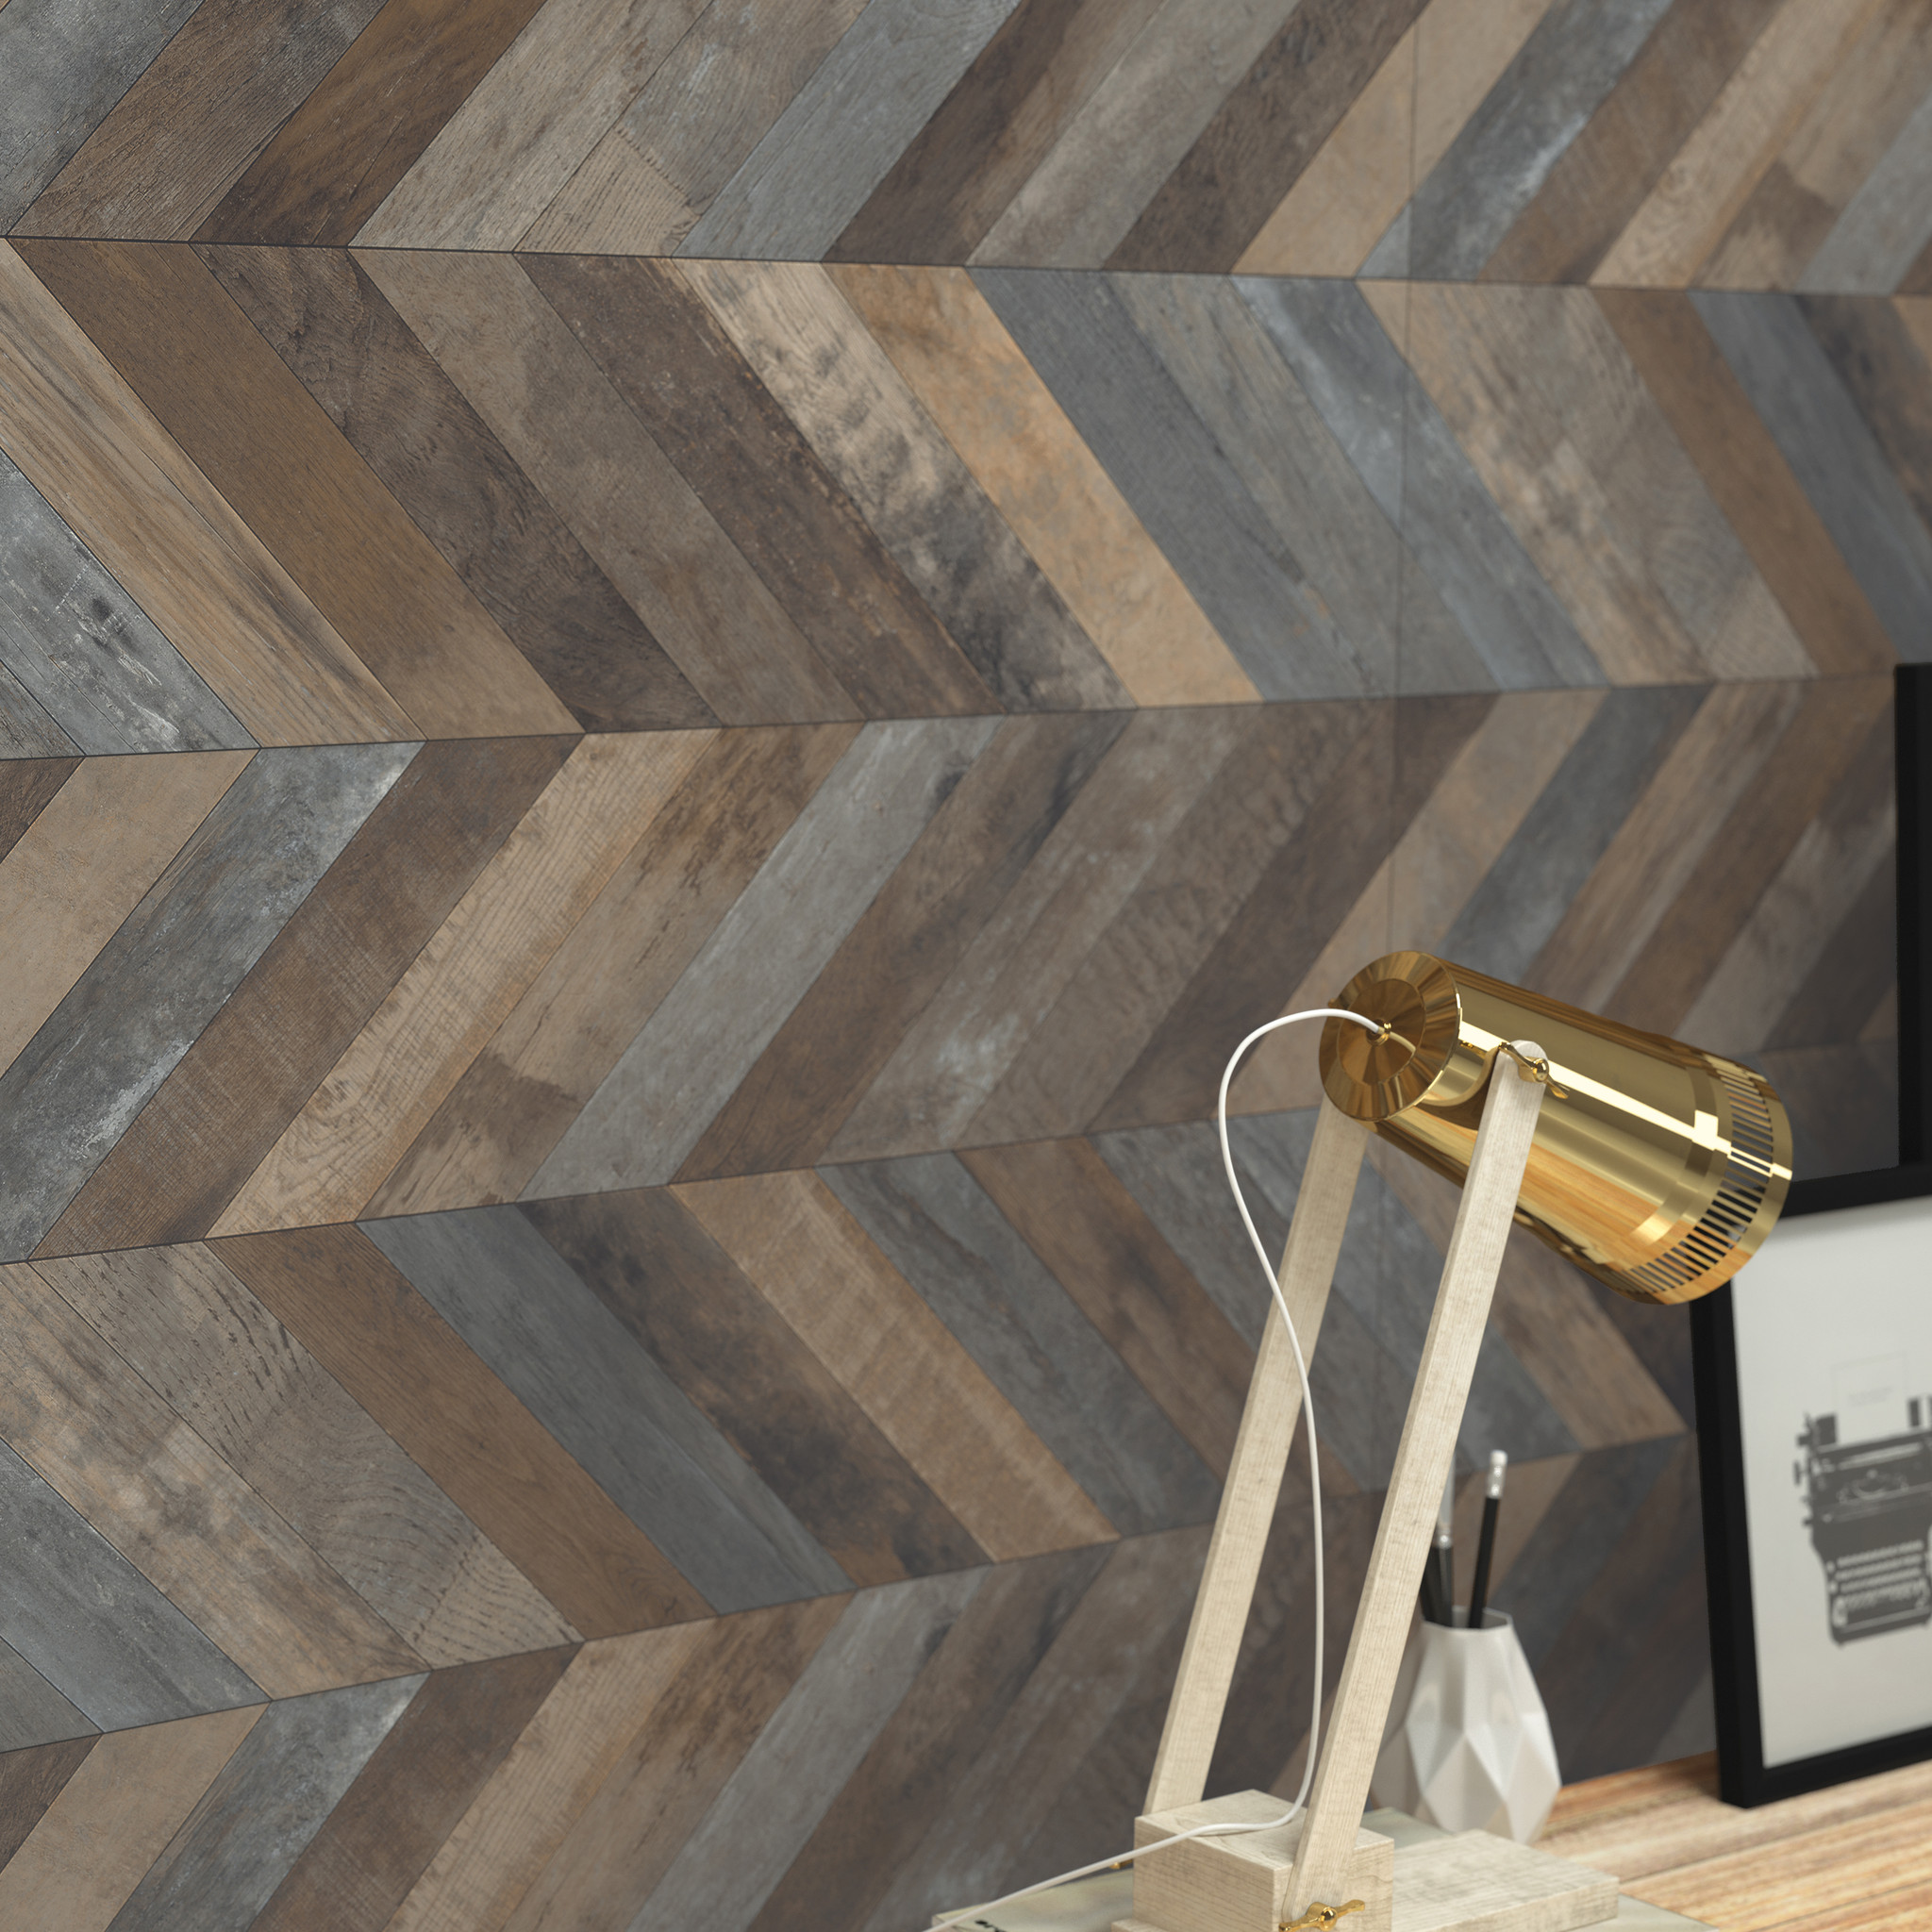 Velocity Emser Chevron wood panel decorative texture rustic wood plank